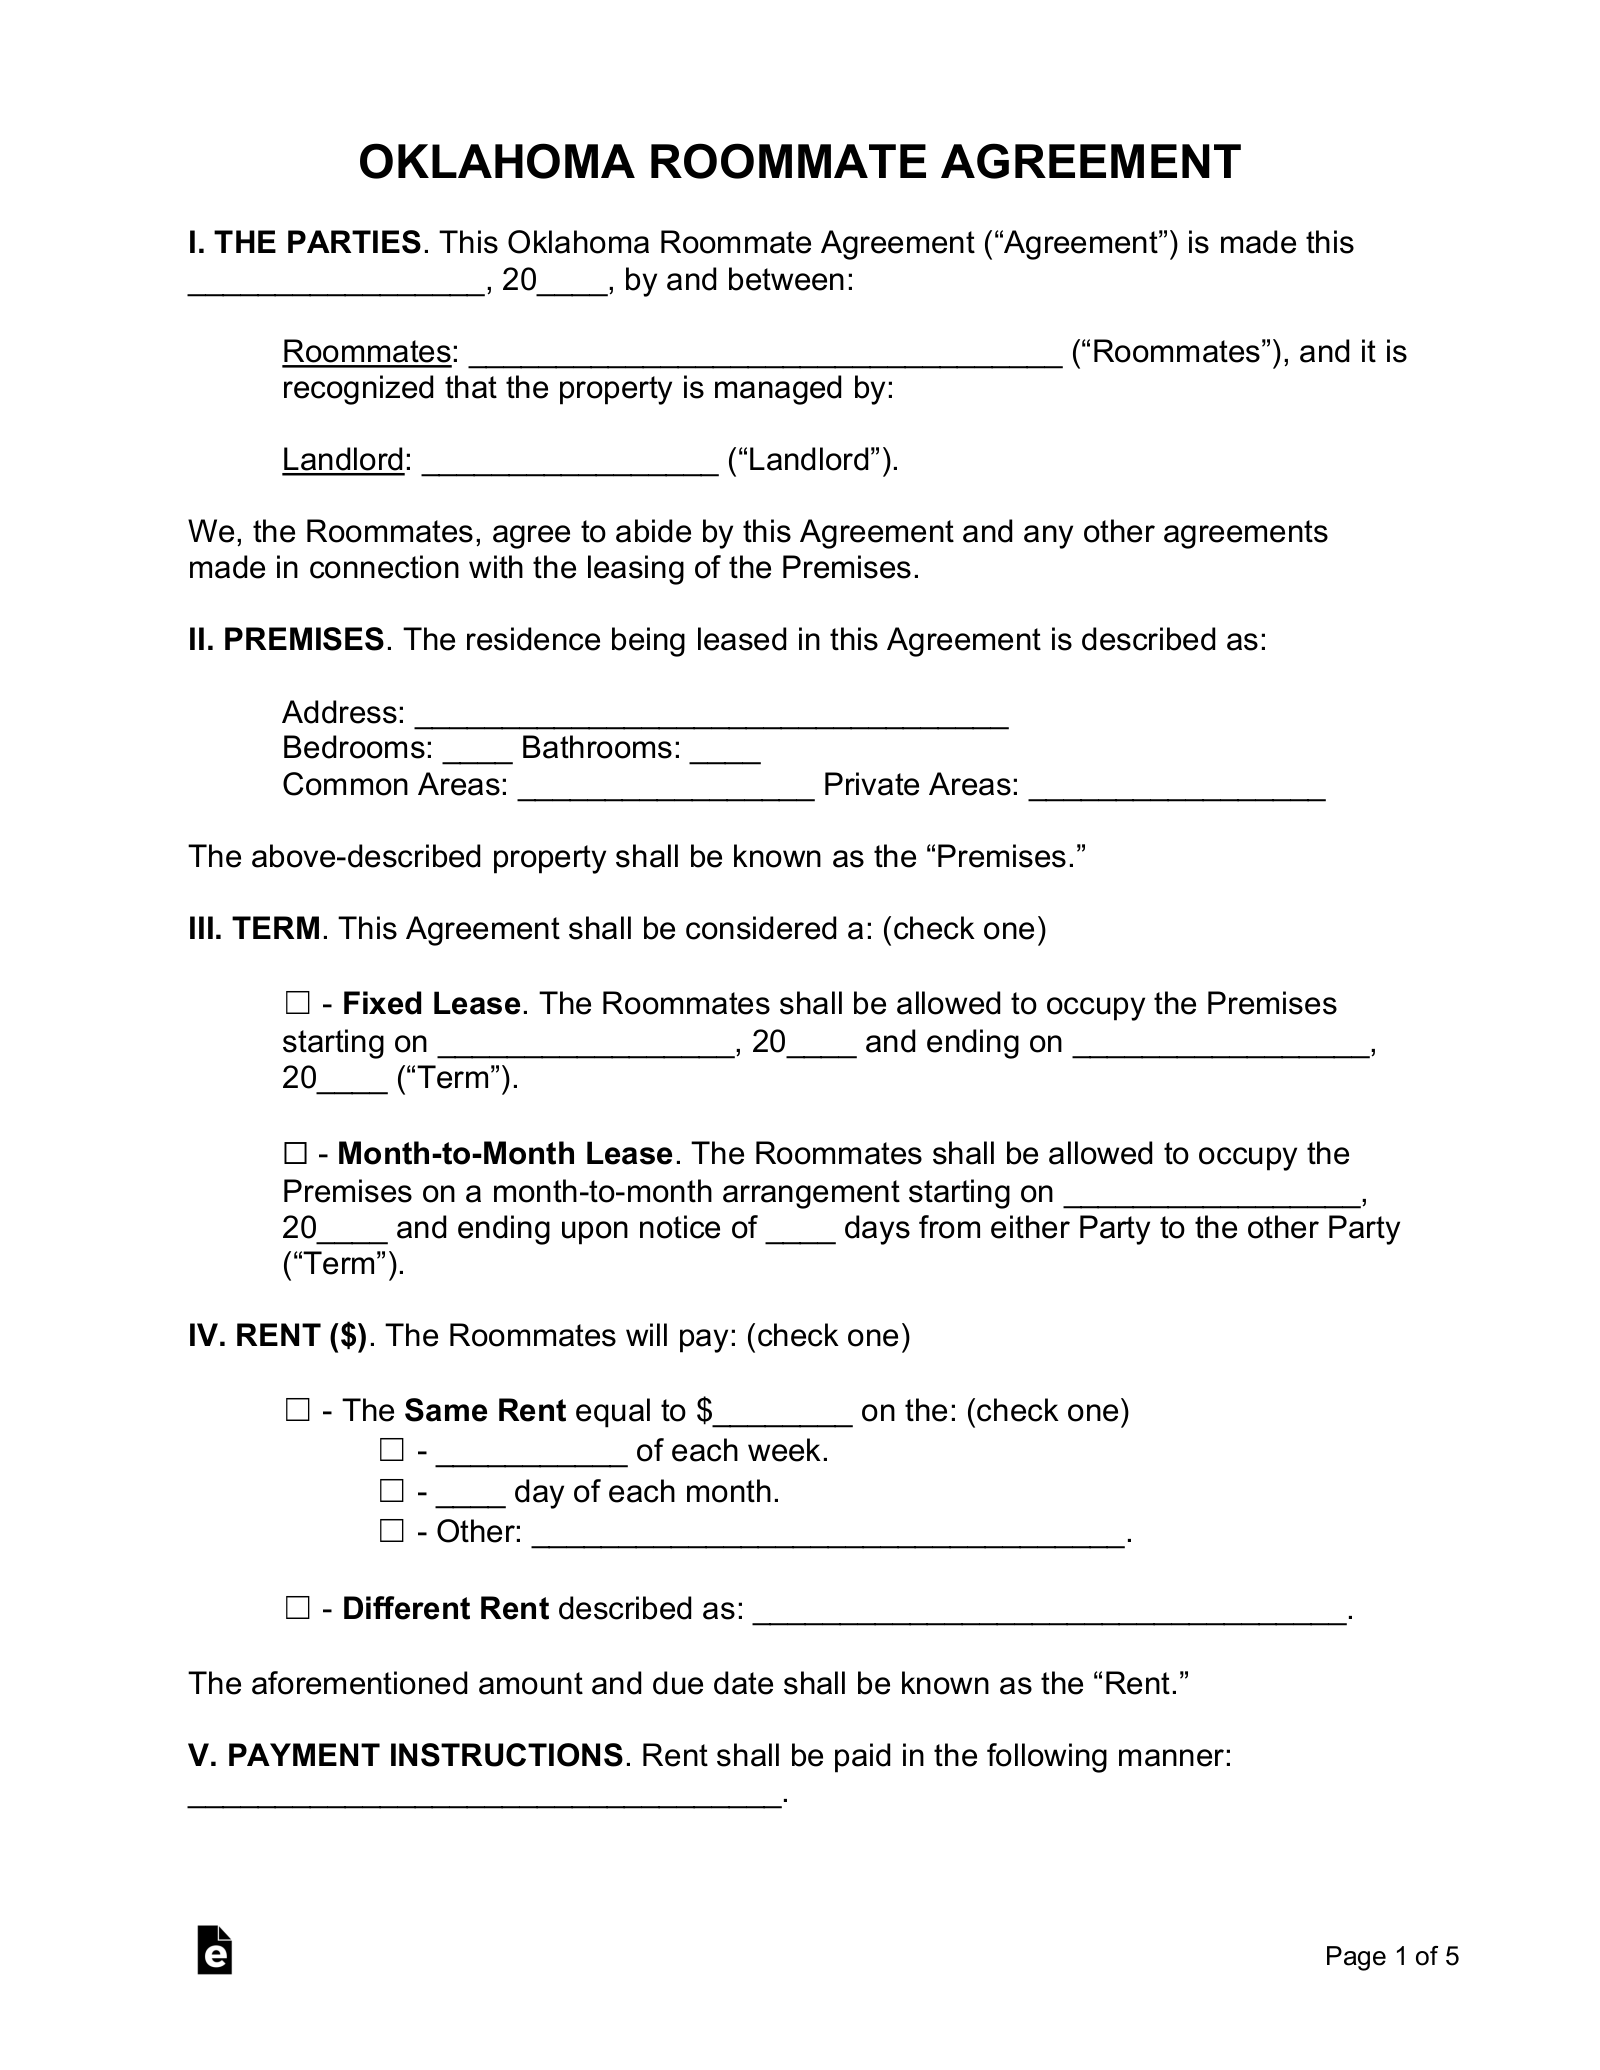 Free Oklahoma Roommate Agreement Form Pdf Word Eforms